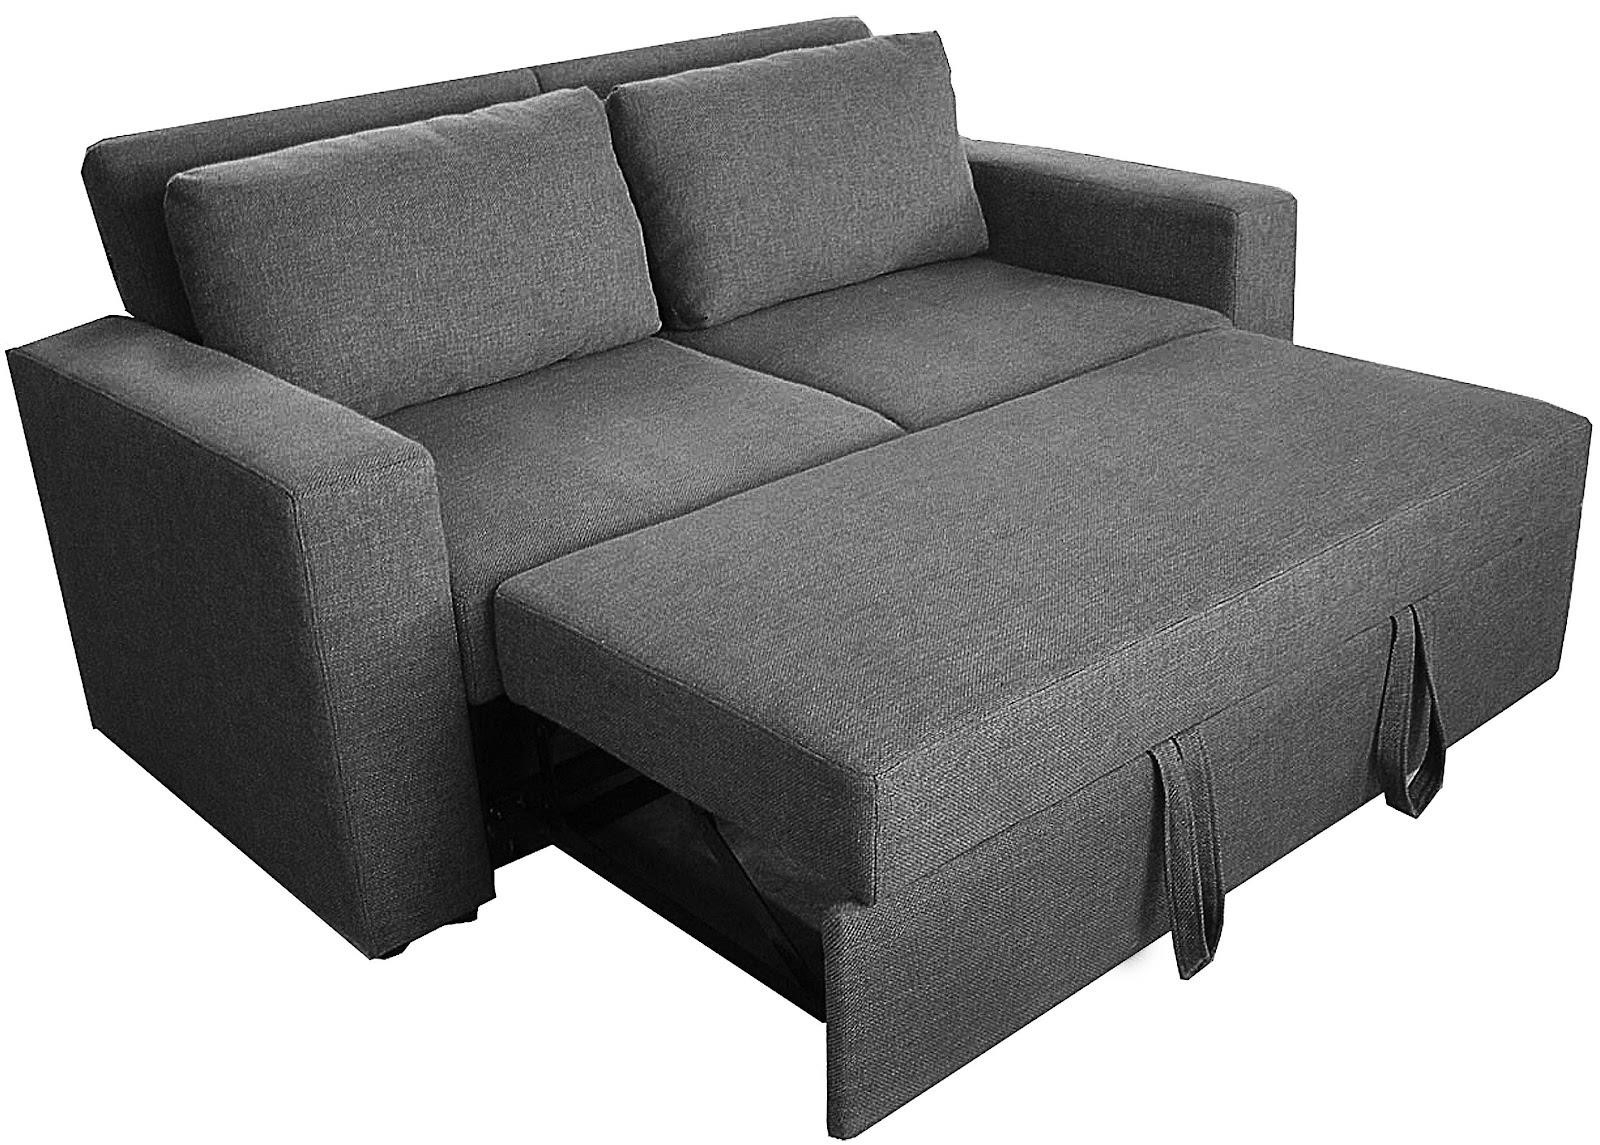 Most Popular Sofa : Loveseat With Pull Out Bed Trundle Beds Pull Out Couches Throughout Pull Out Sofa Chairs (View 3 of 15)